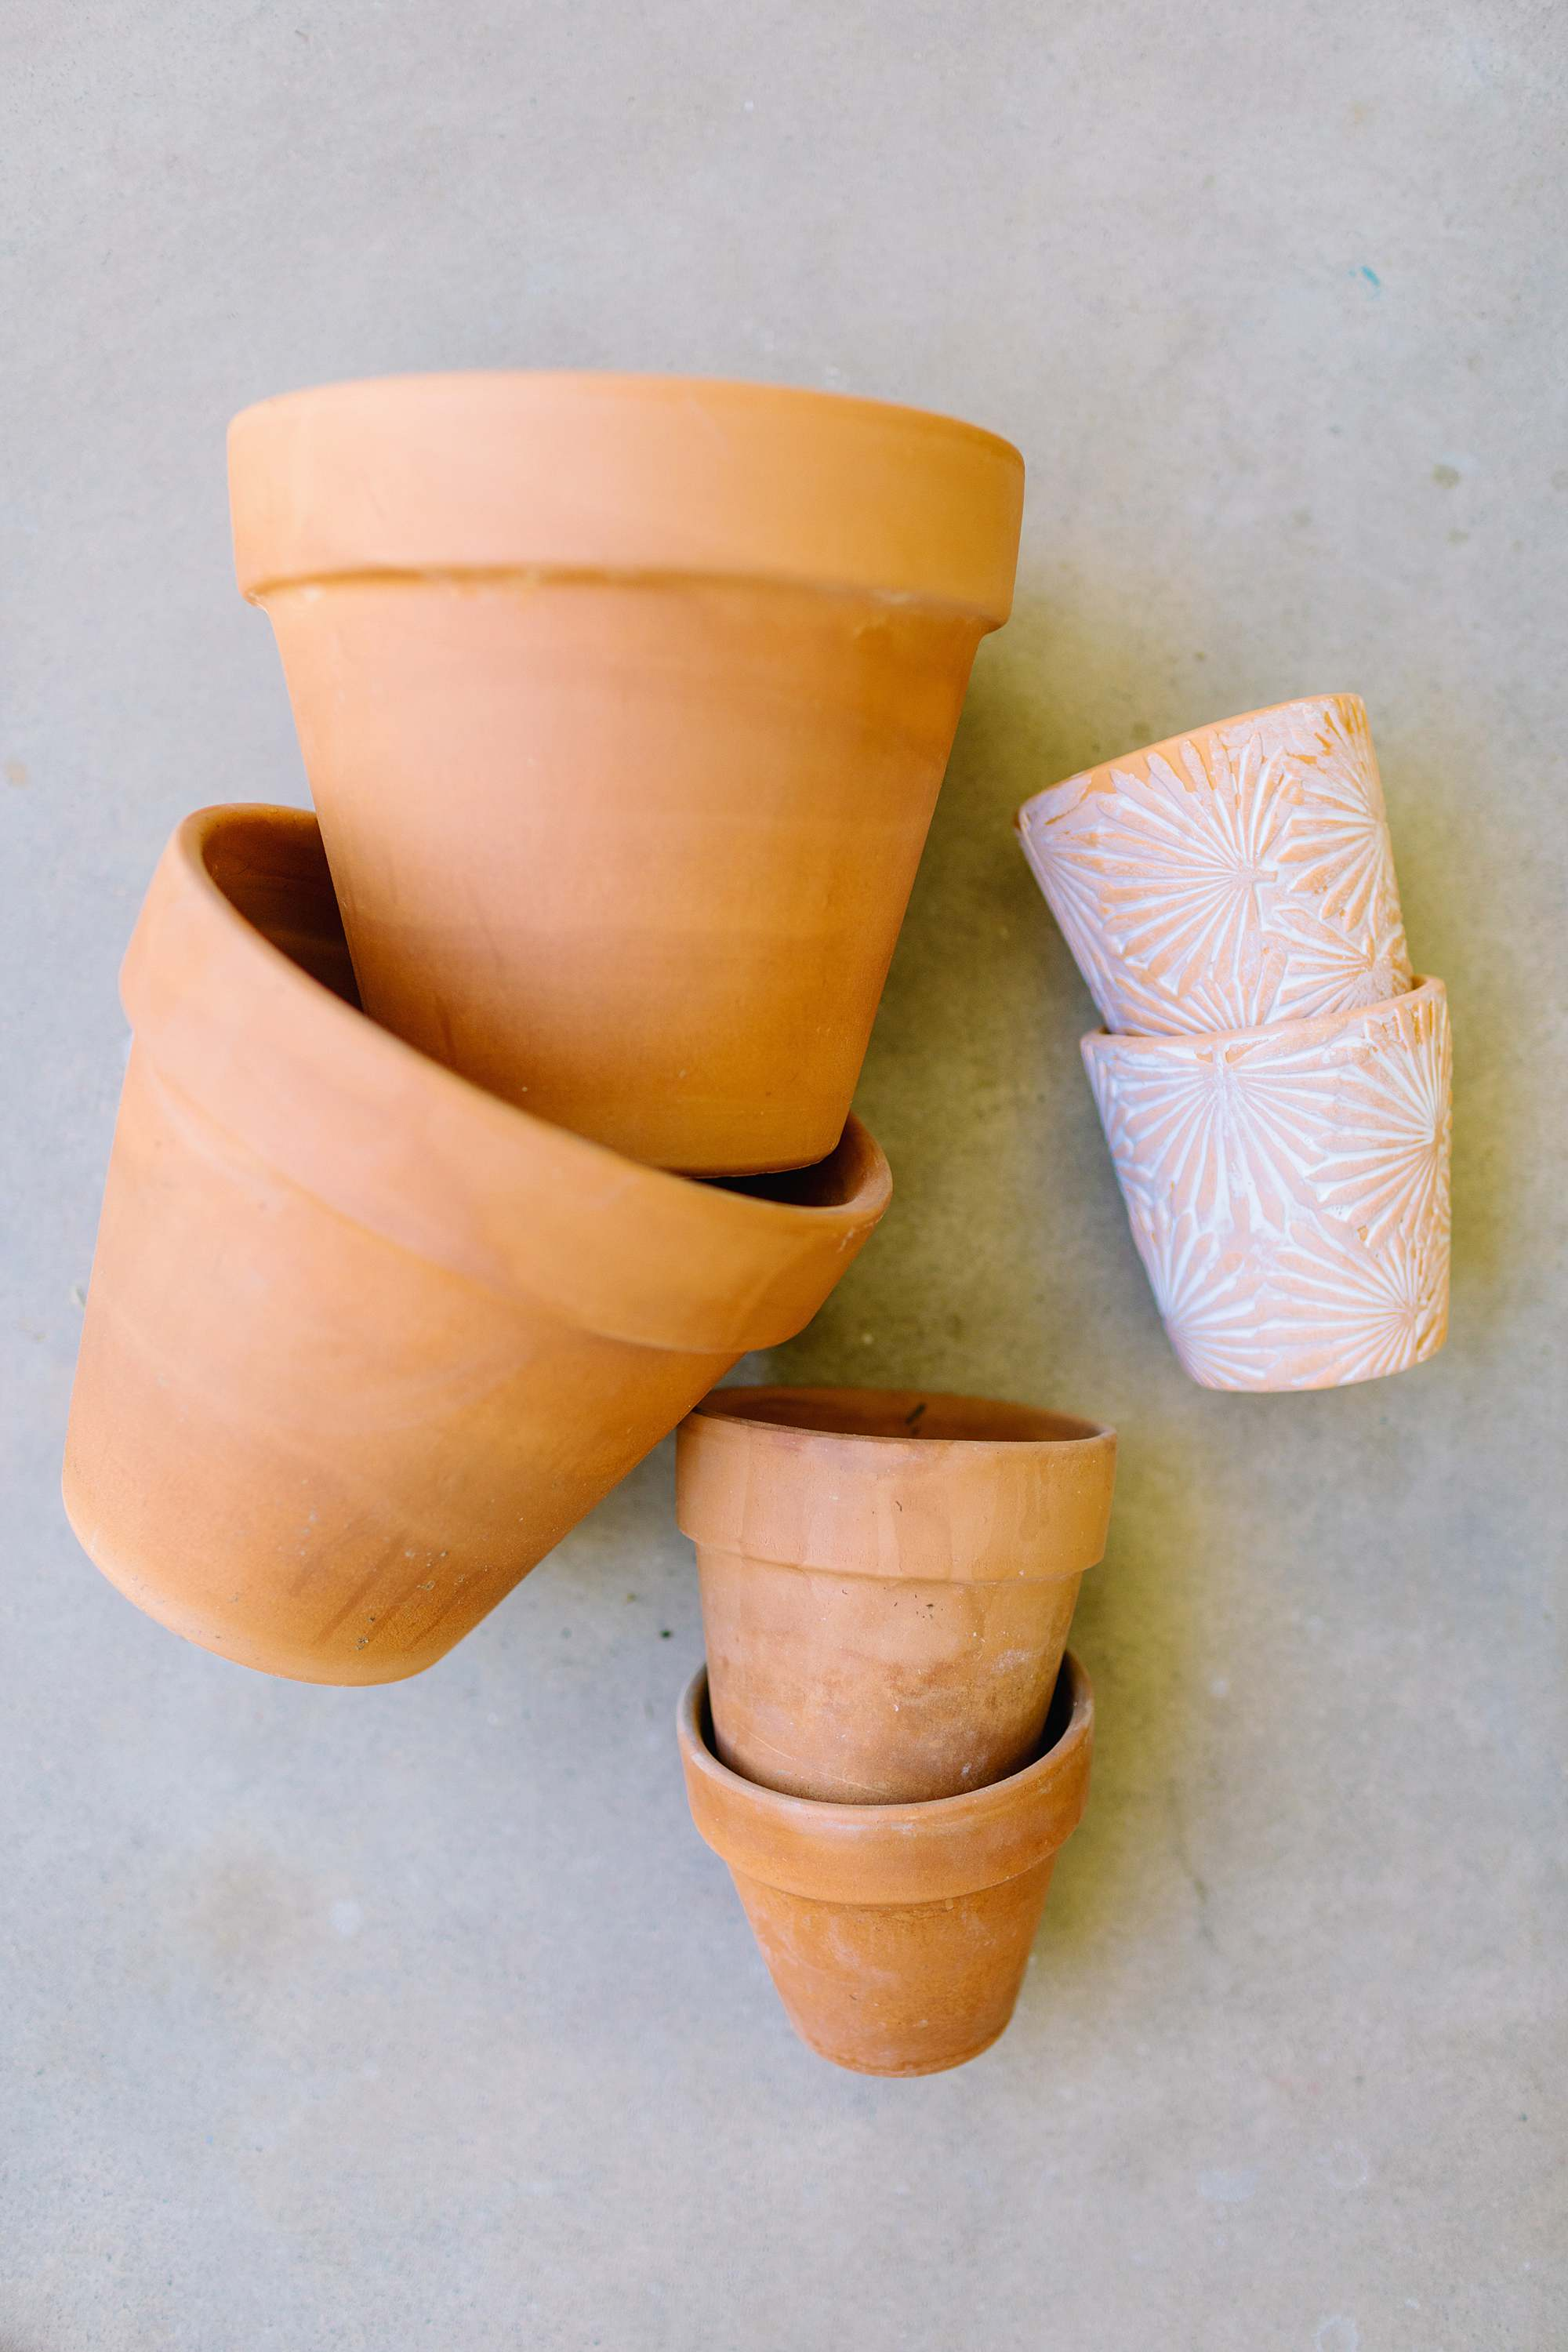 terra cotta pots at the 99 cents store for gardening - 8 things to find at the 99 cents store to save you money